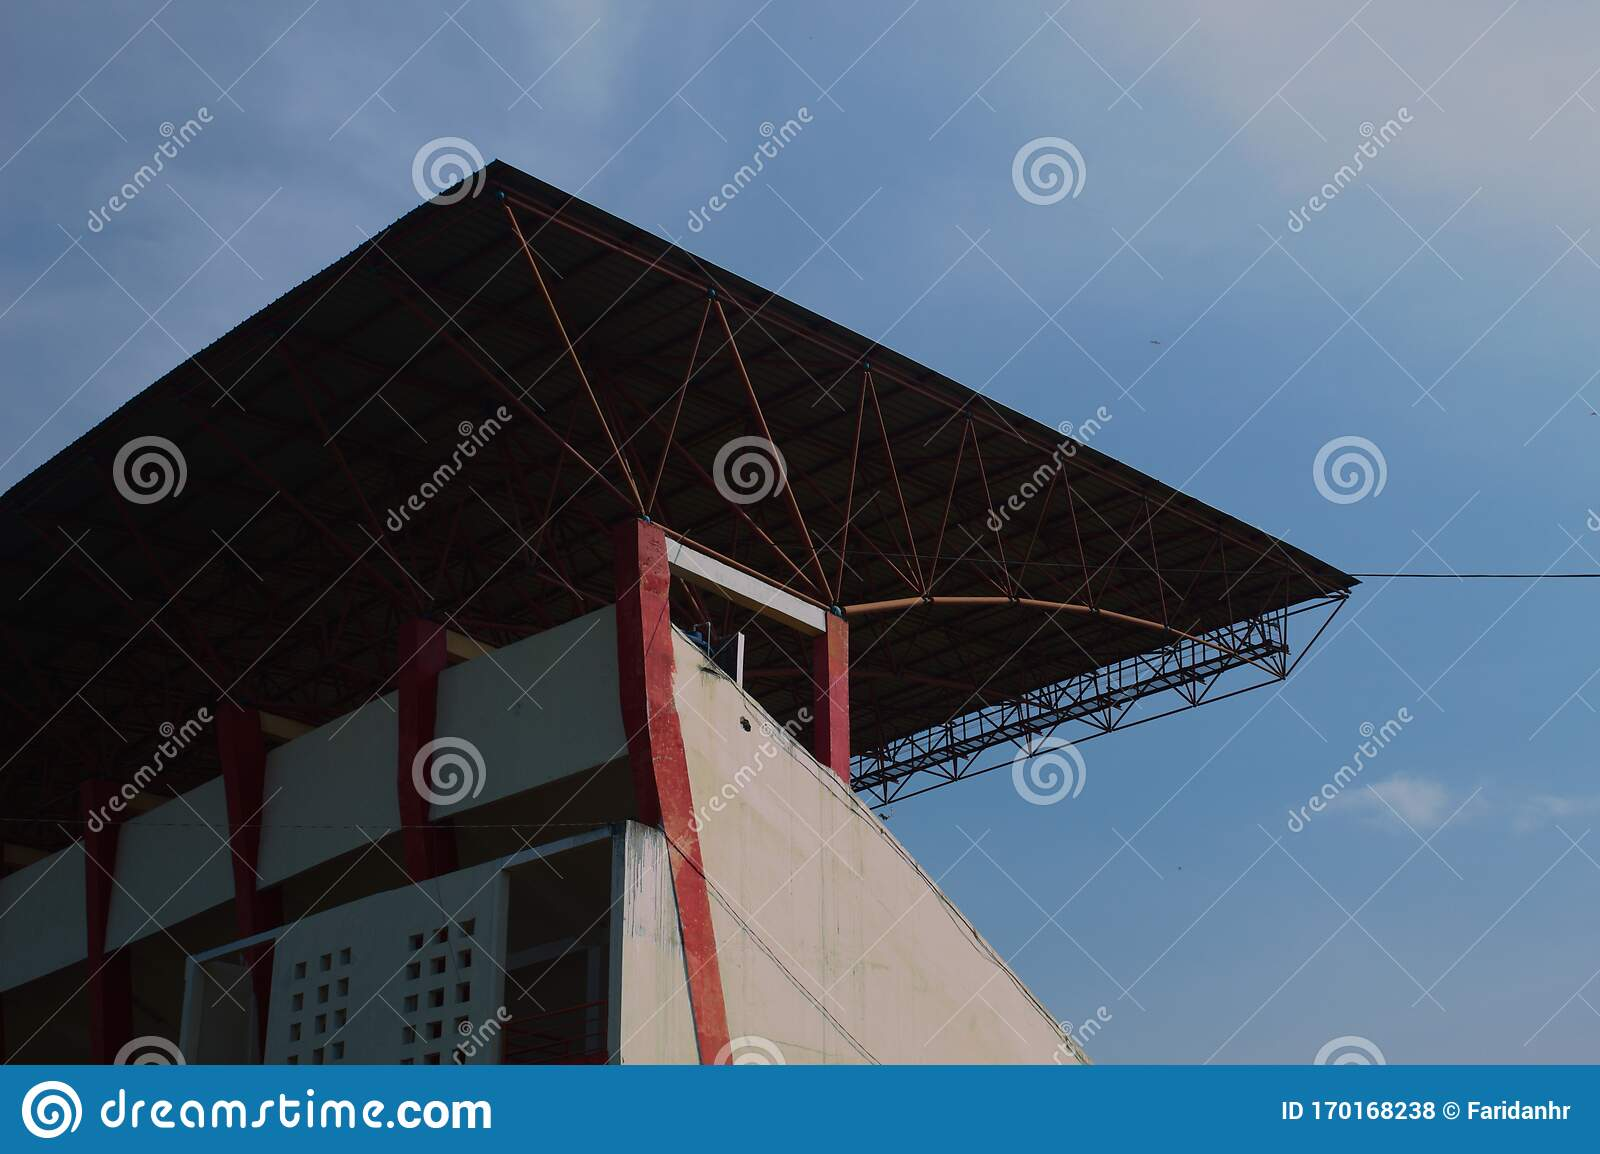 Modern Roof With Angular Architectural Design Stock Photo Image Of Industry City 170168238